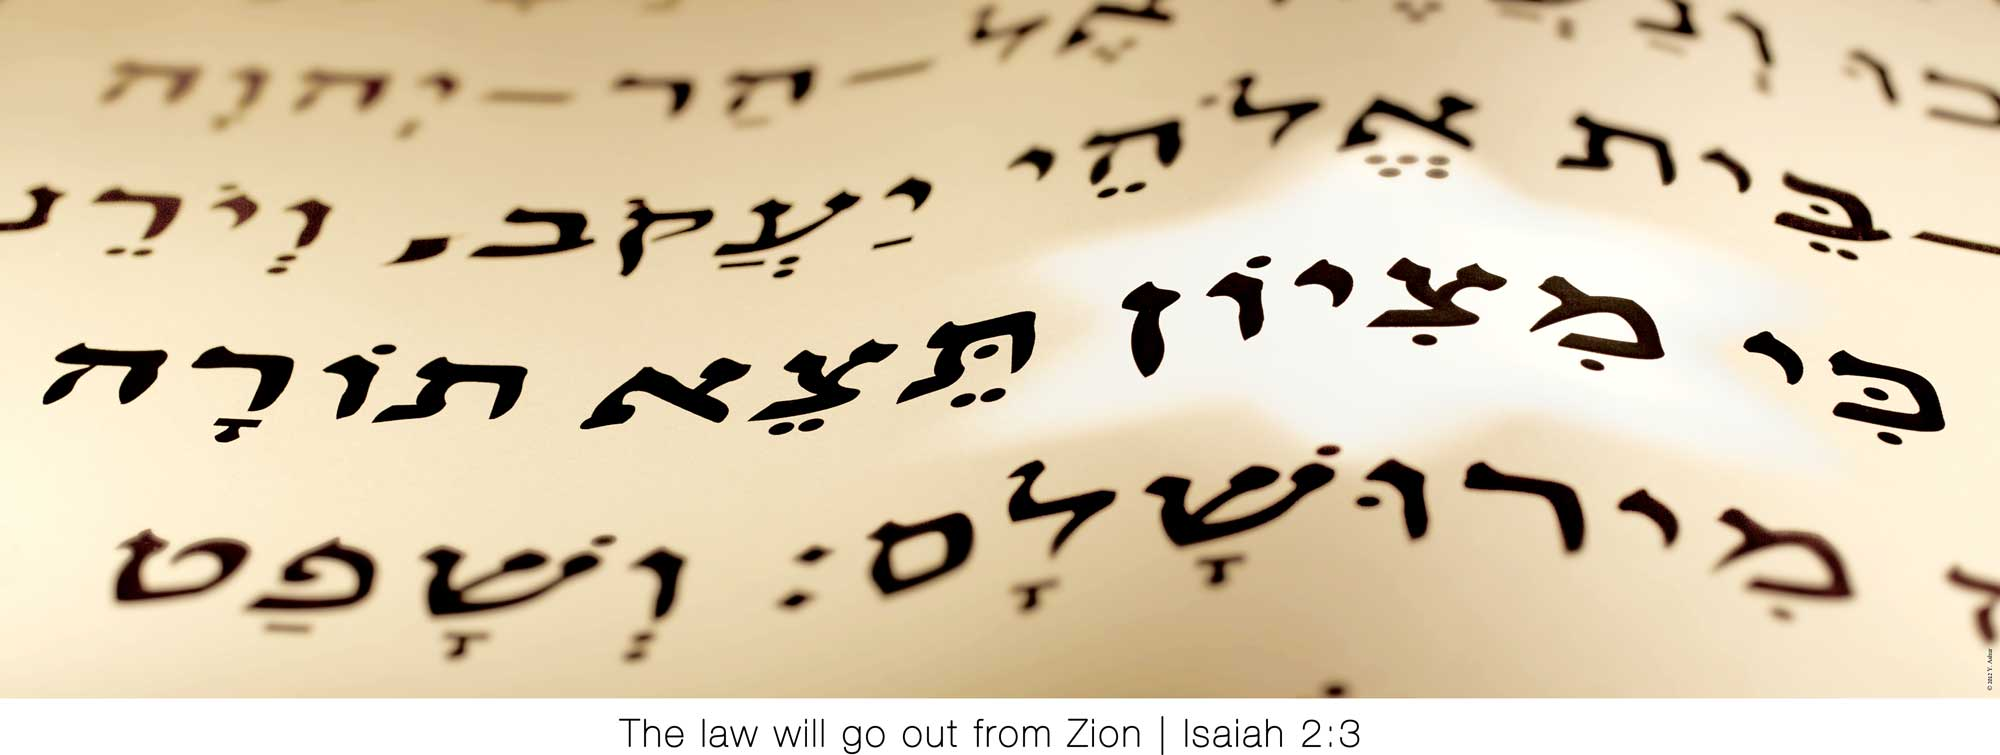 From Zion text Isaiah